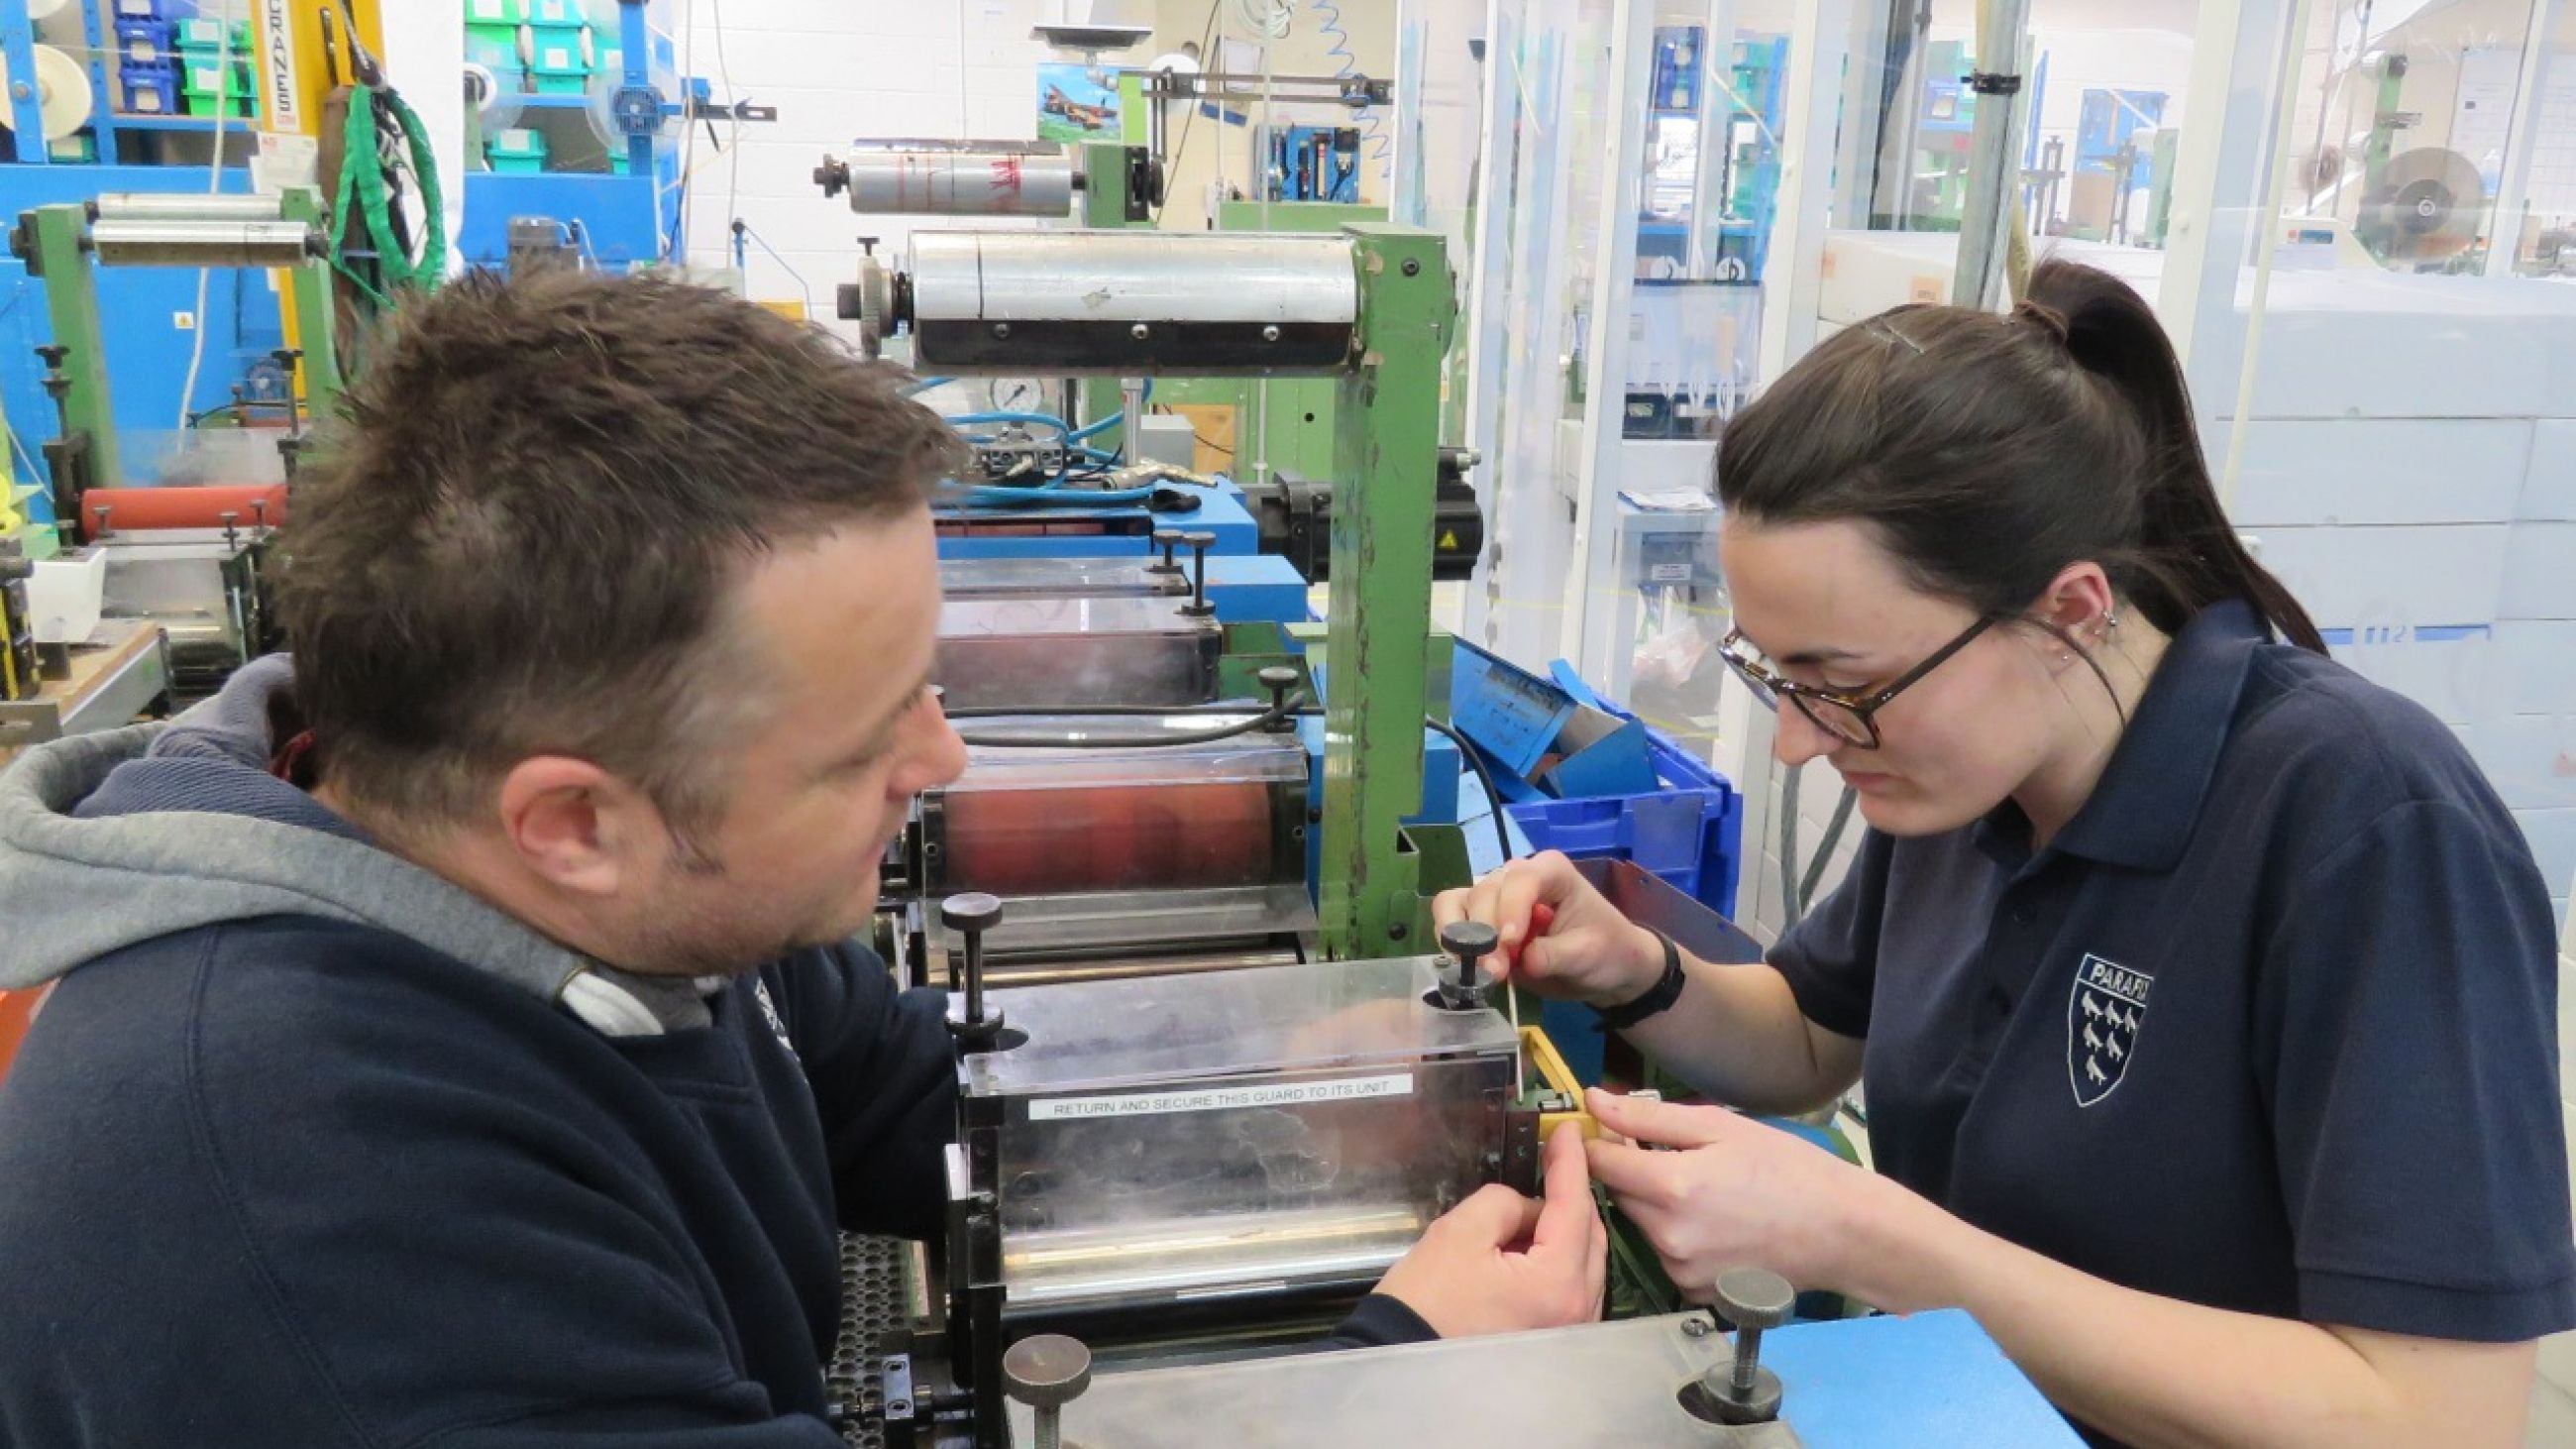 News from our apprentice – Blog 15